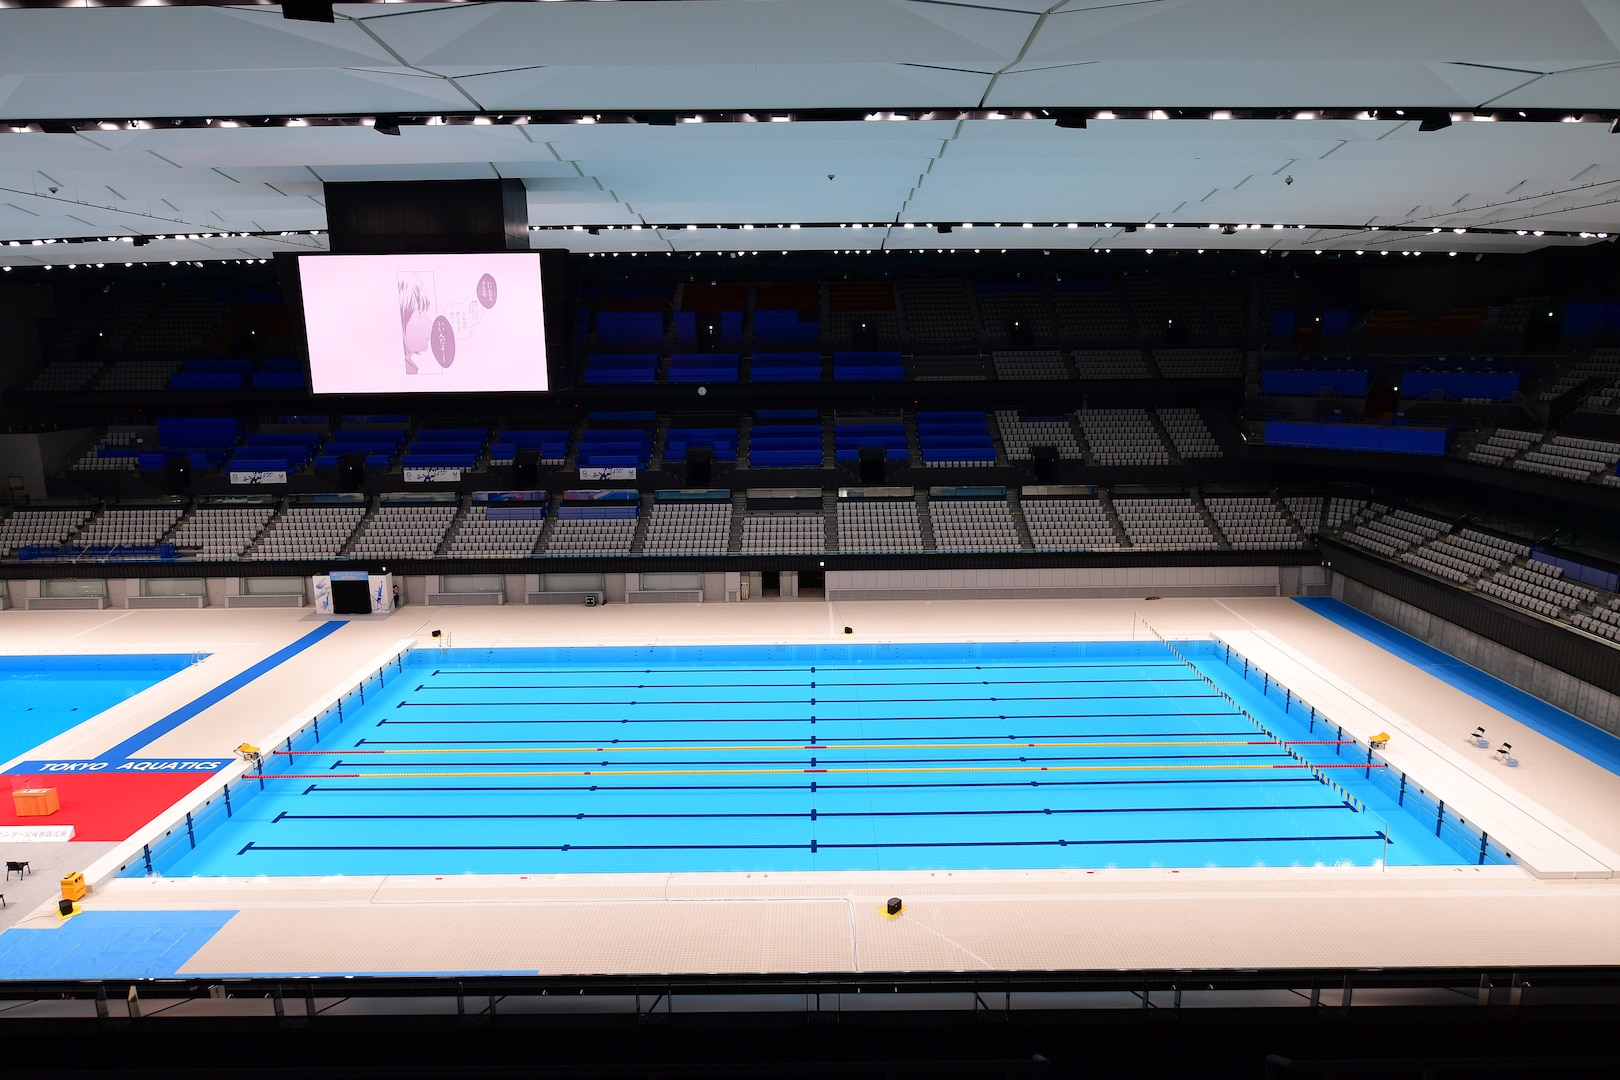 A birds-eye view of the swimming pool inside the new Tokyo Aquatics Center.